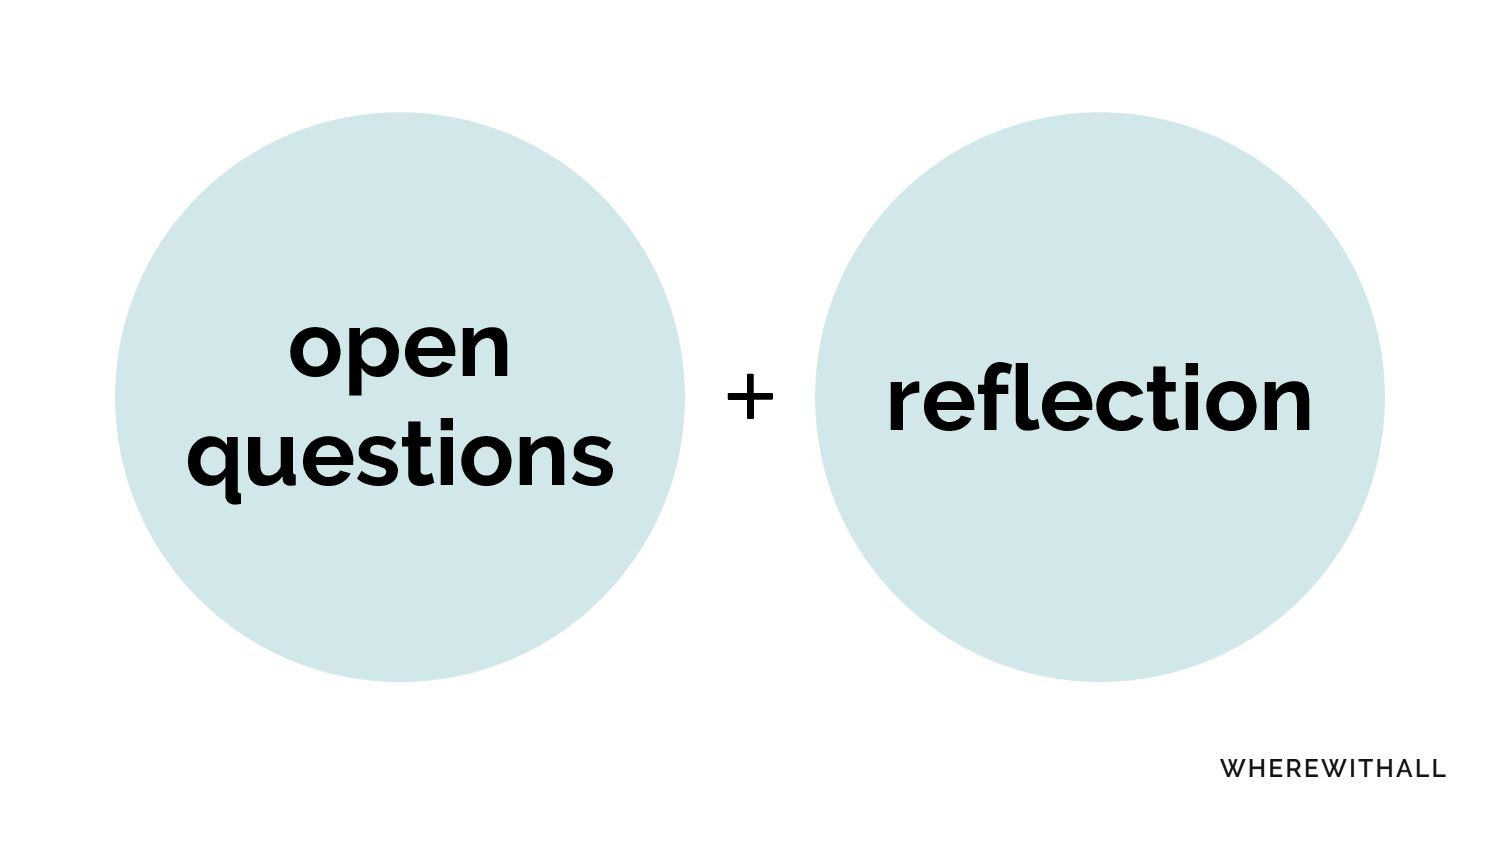 open questions reflection +